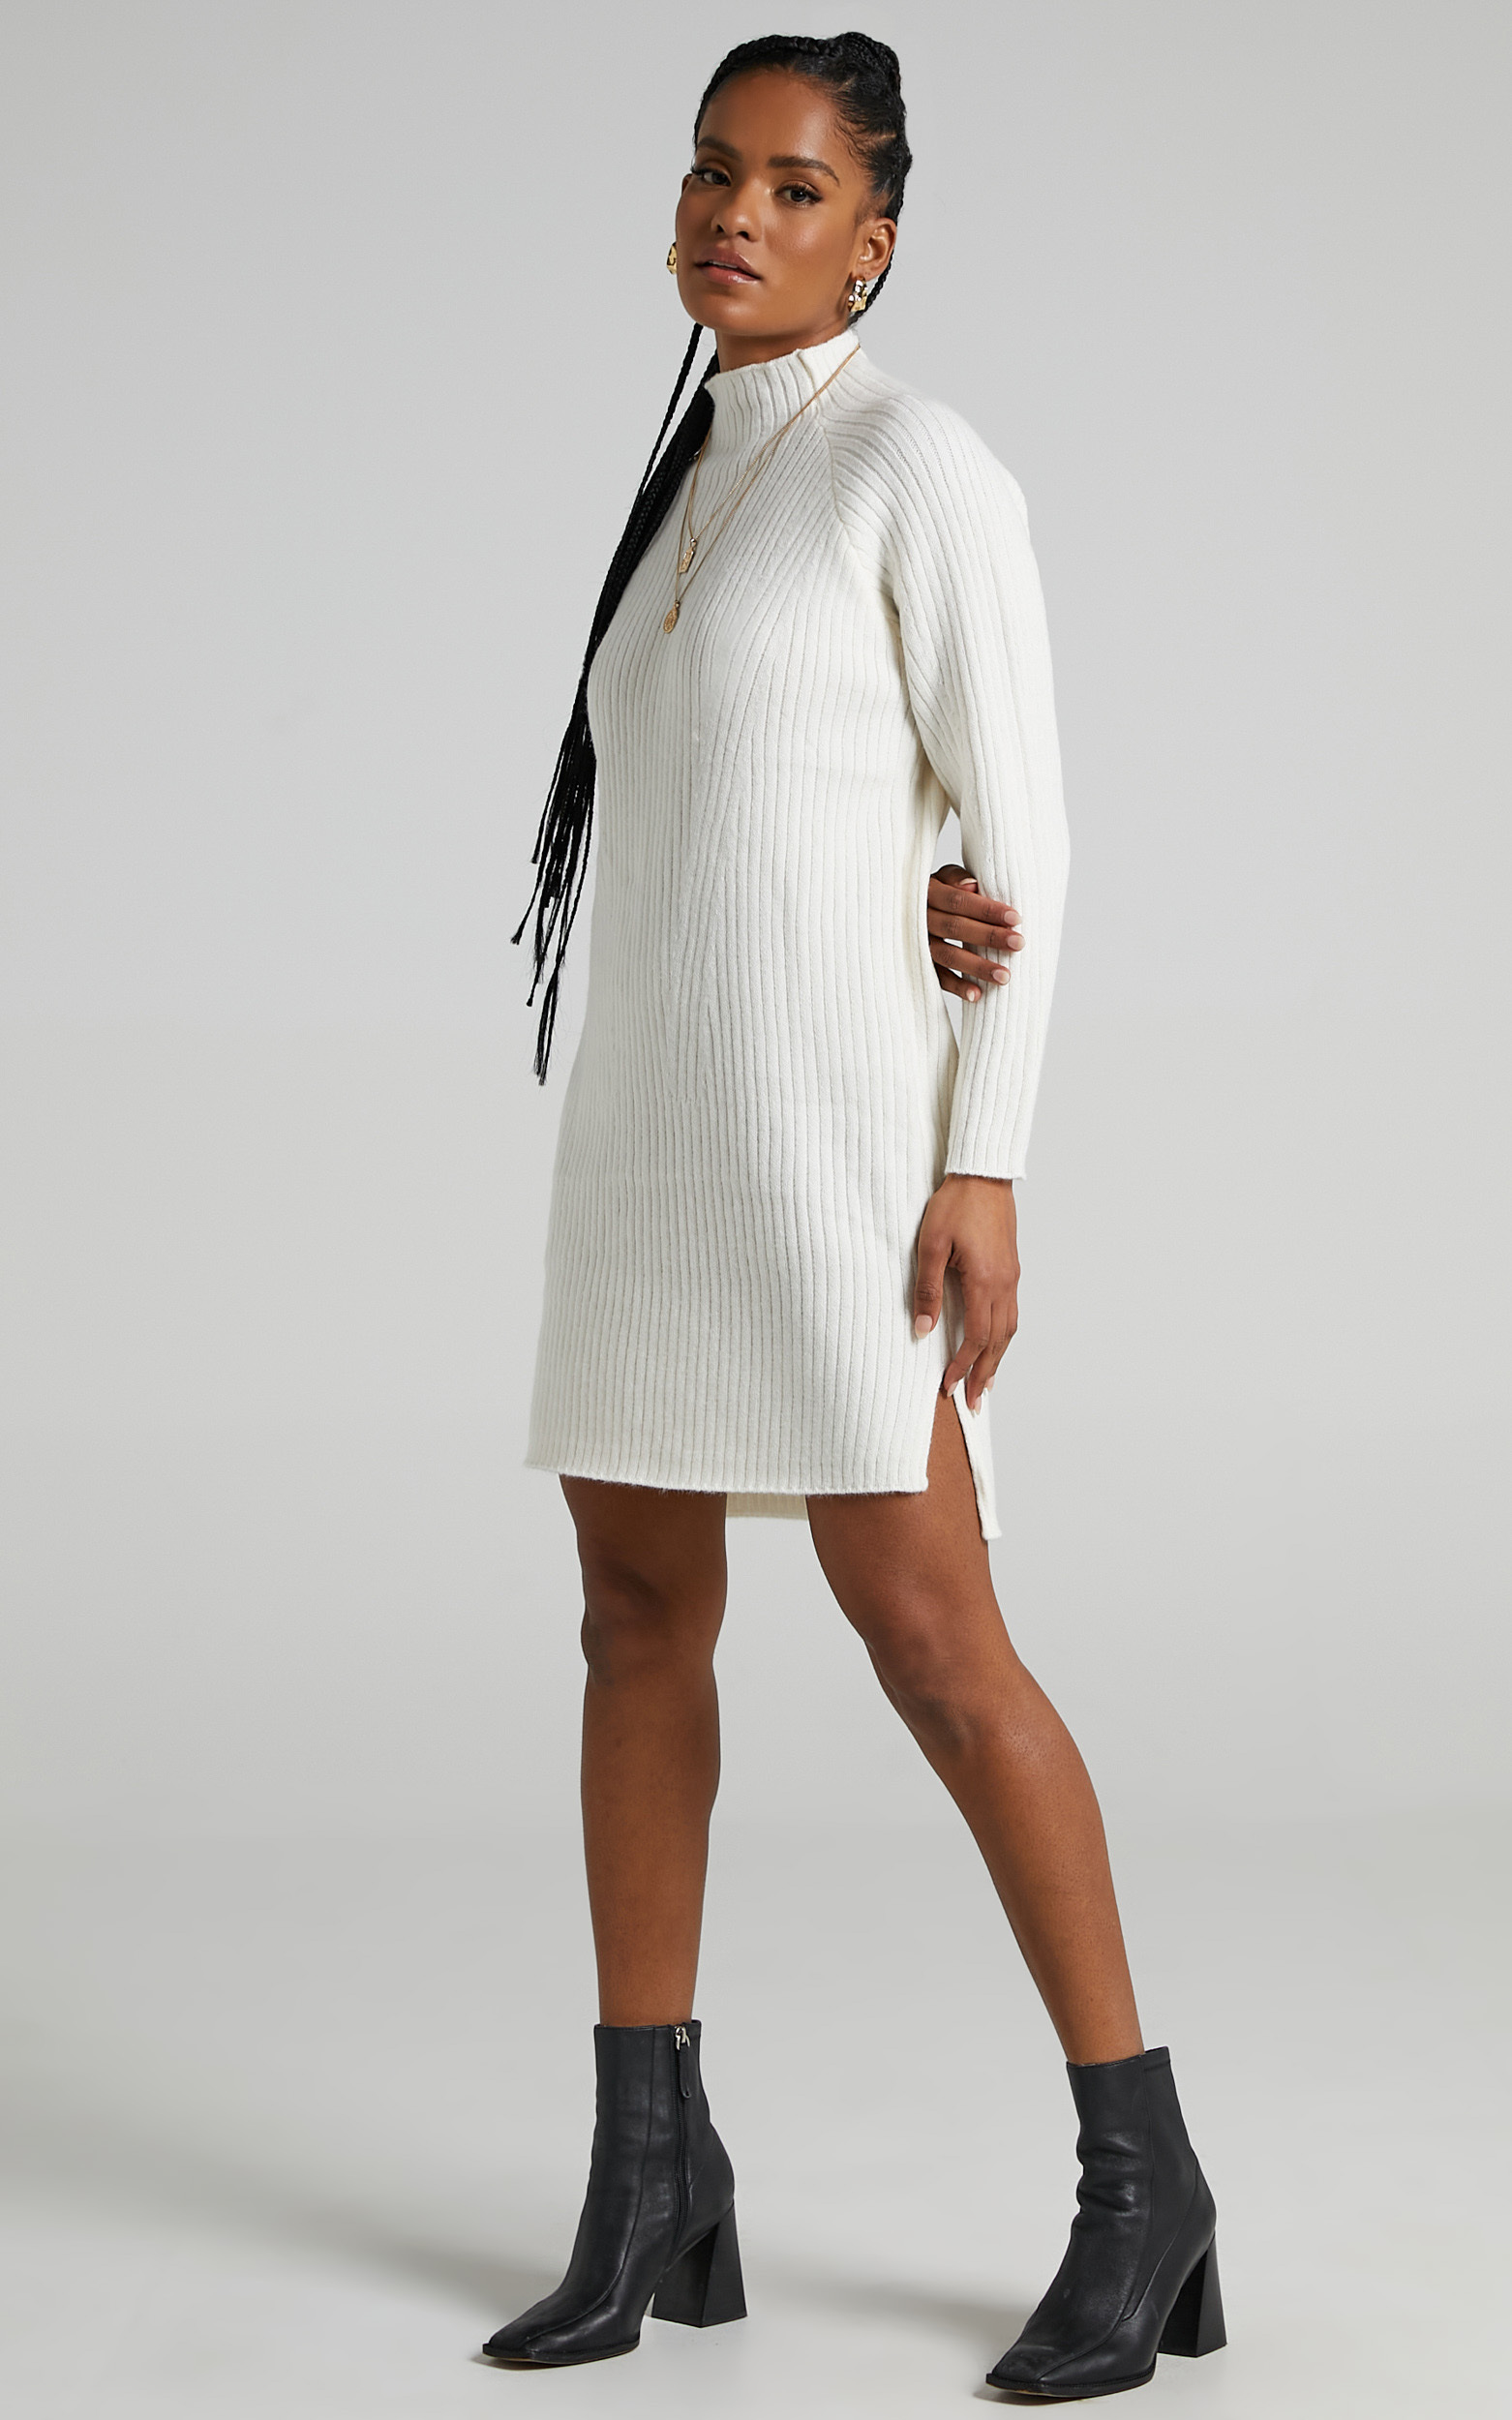 Shantelle Knit Dress in Cream - L/XL, CRE1, hi-res image number null